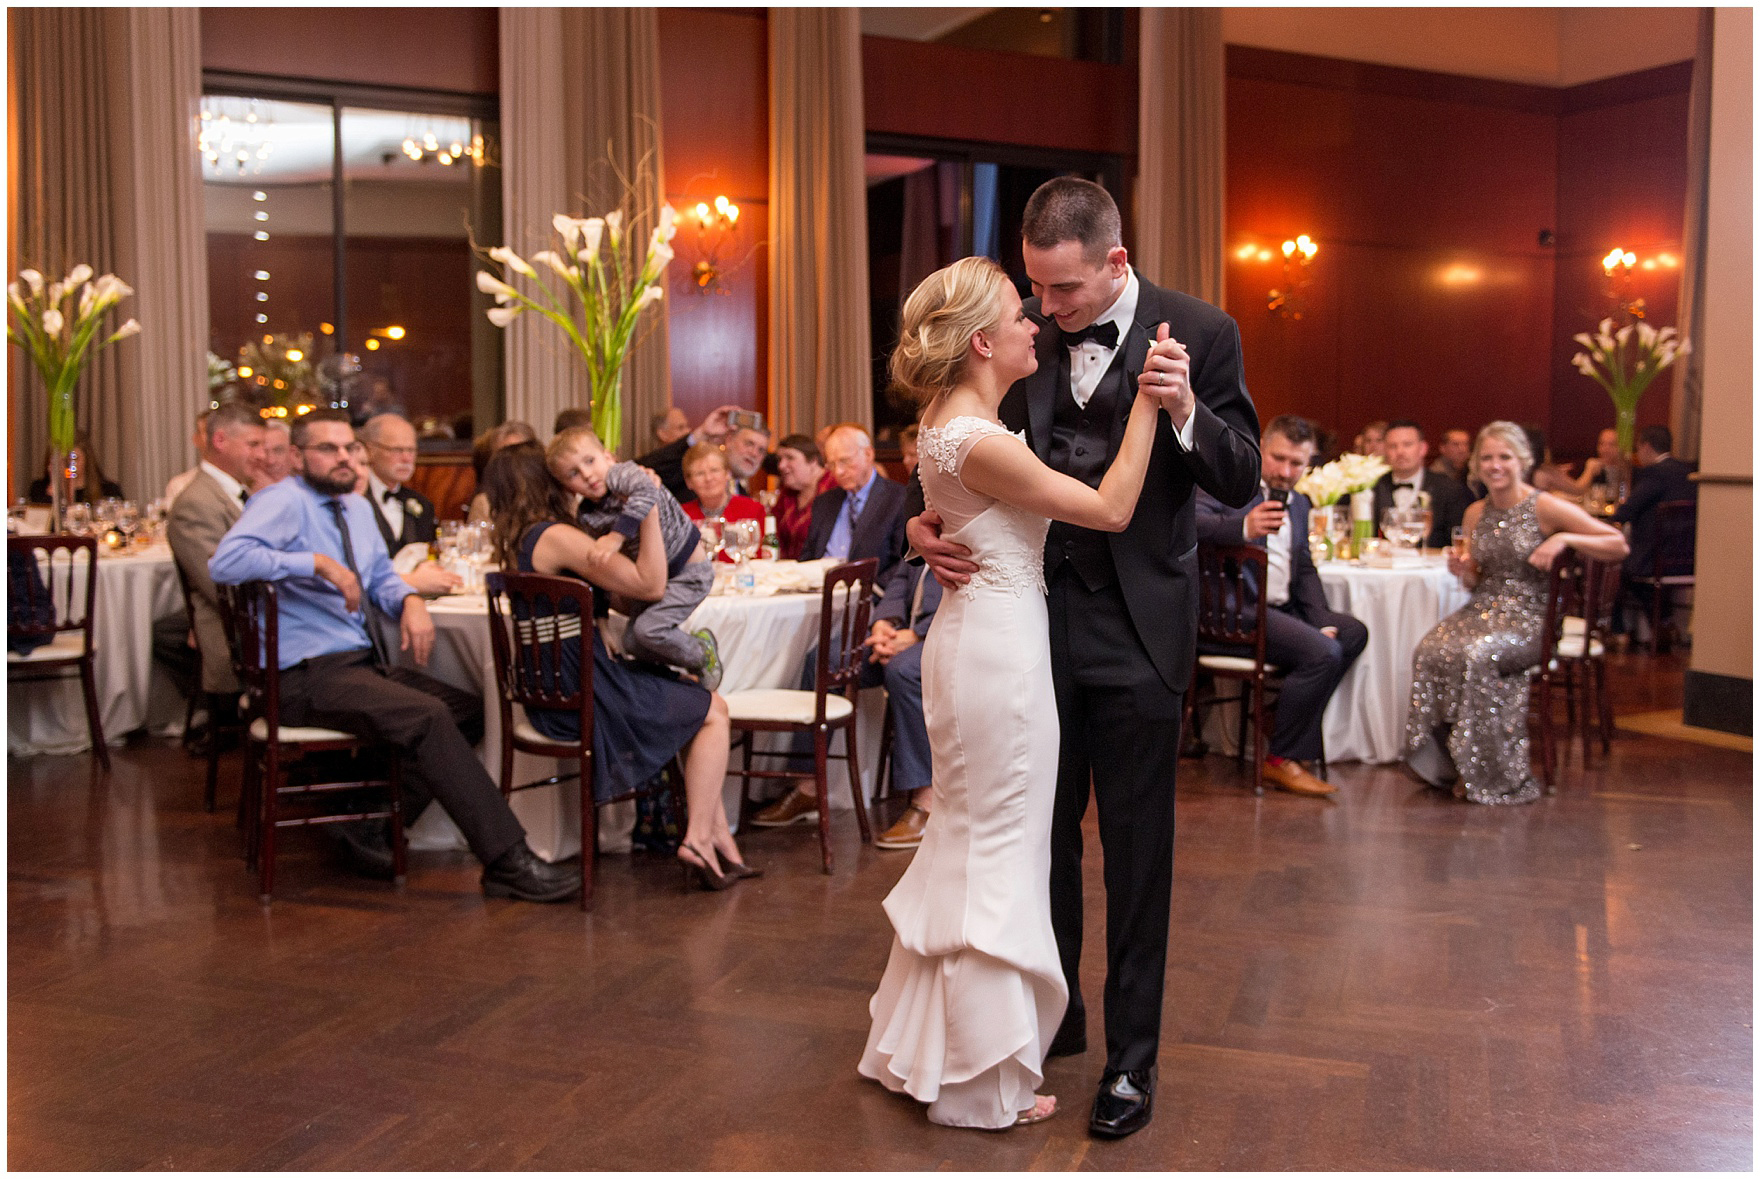 The bride and groom dance during a Newberry Library Chicago wedding reception.